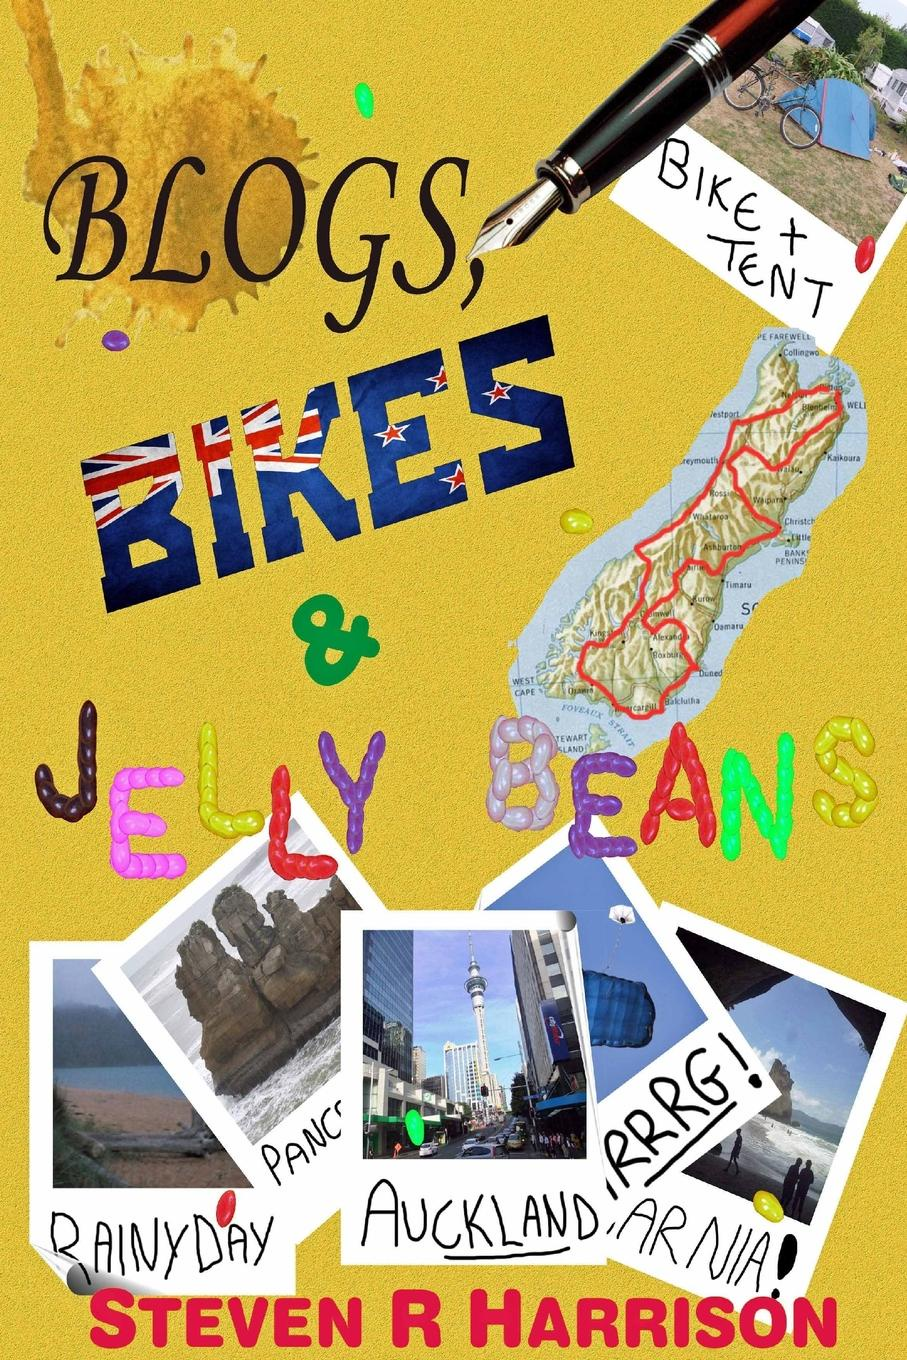 Steven R. Harrison Blogs, Bikes . Jelly Beans. guitar day the jumping cats